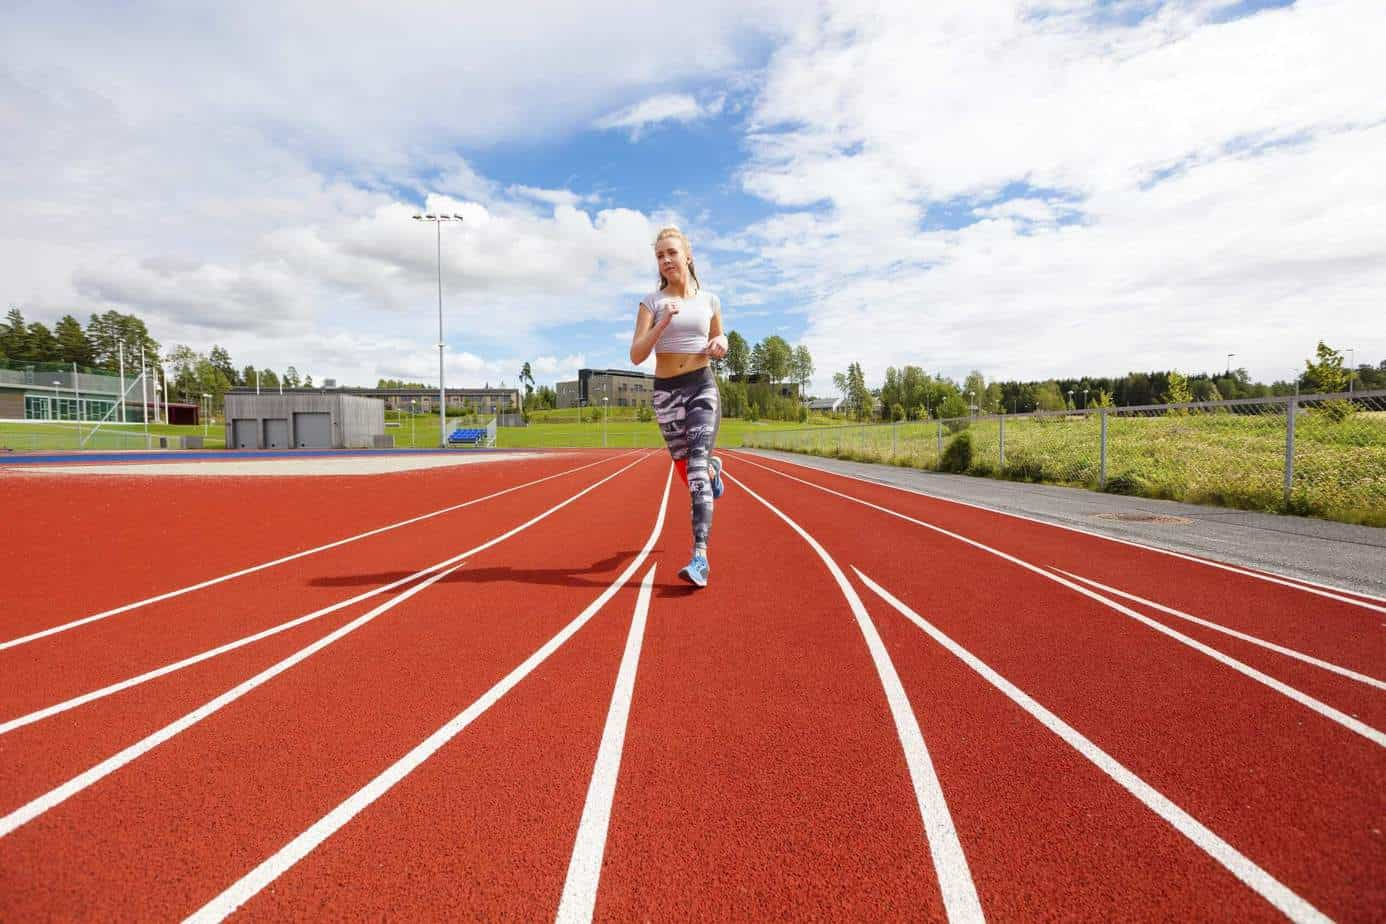 Crossfit running track workouts